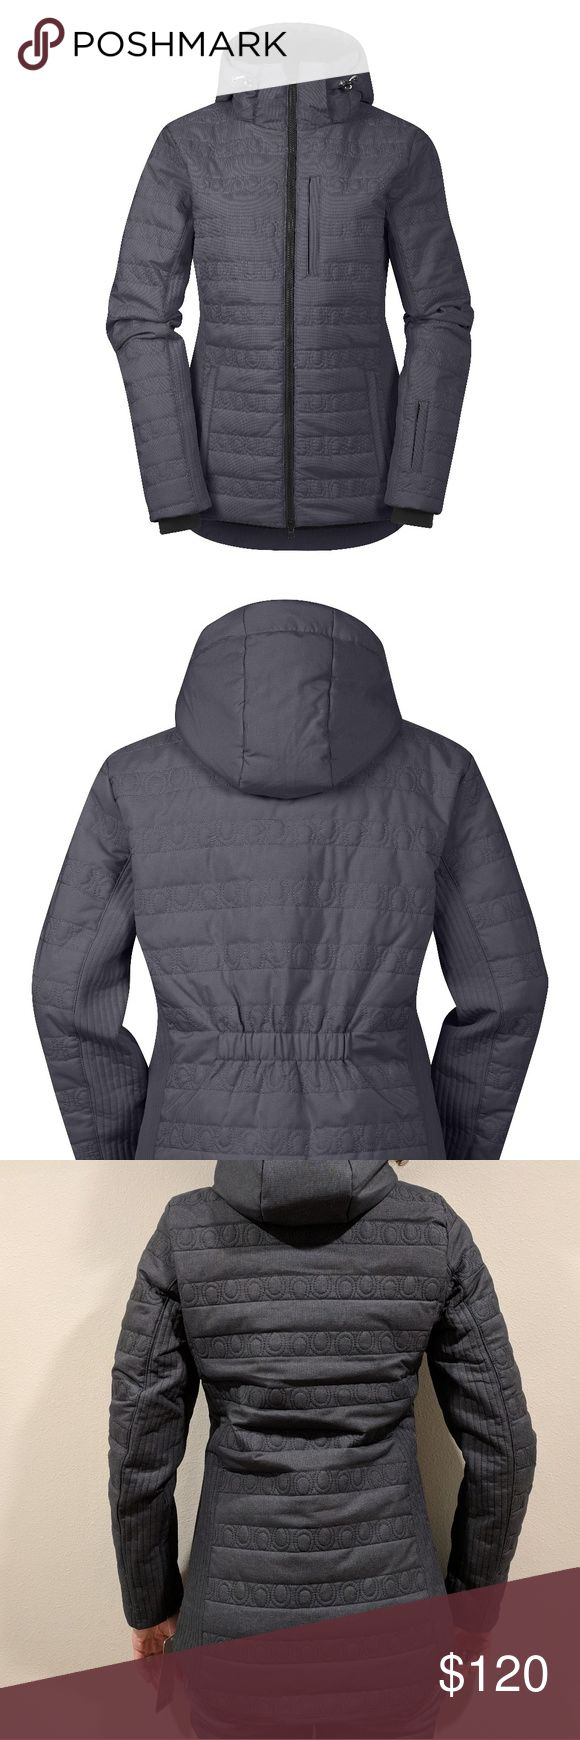 """Kerrits EQ Insulator Jacket in Ebony """"Designed by women who ride through the bone-chilling damp of NW winters & truly appreciate smart insulation, this jacket offers an entirely new category of warmth for Kerrits. It features slimming elastic at the waist, but don't let flattering lines fool you—this is a puffy with equestrian attitude & a durable exterior made the stand up to horse life.""""  * Quilted with technical insulation * Tall stand up collar * Large storm hood with drawstrings…"""